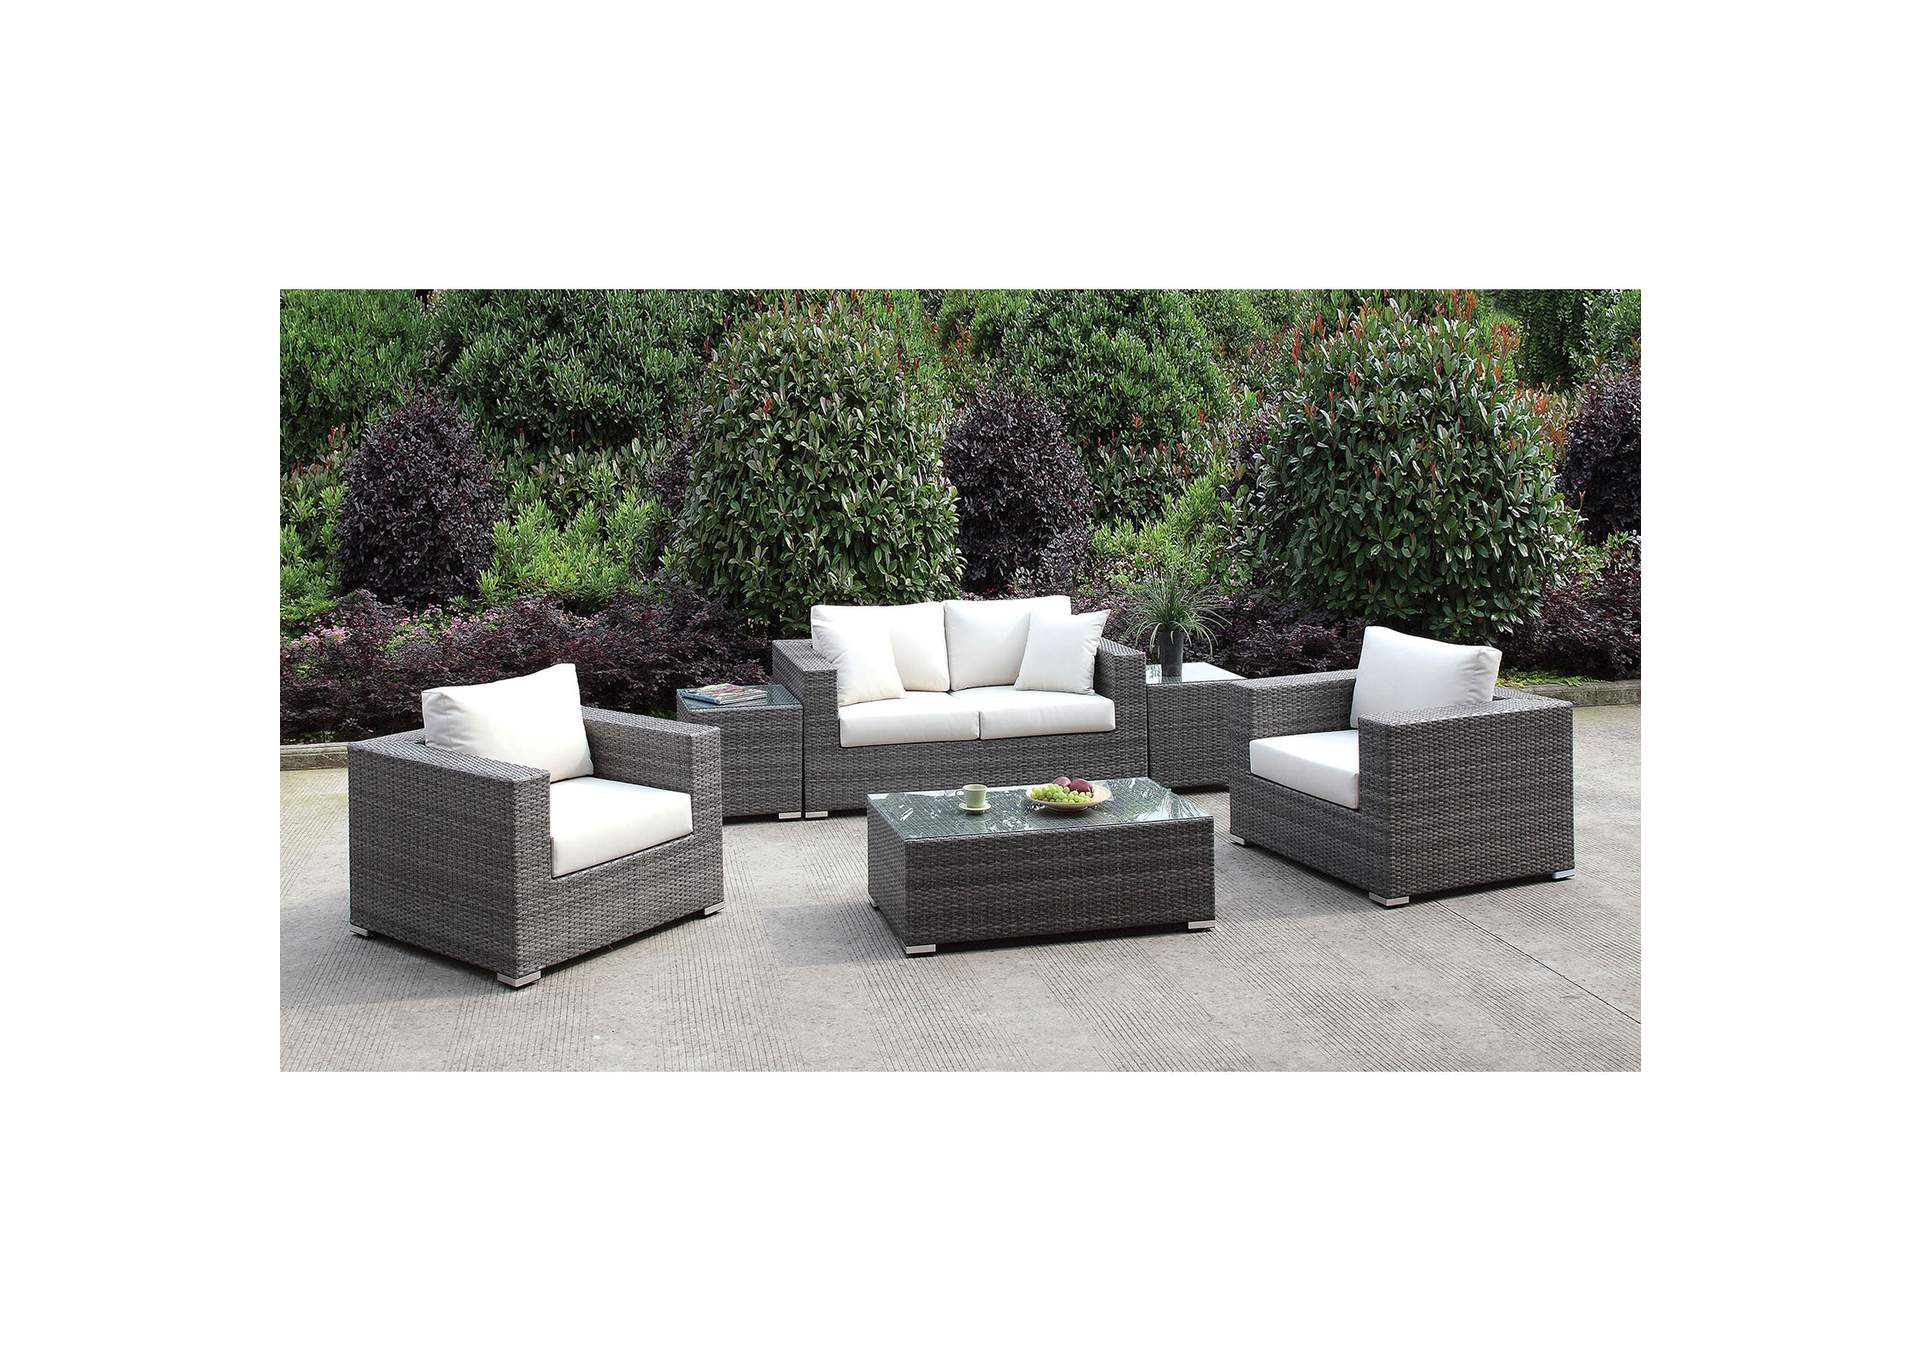 Somani Light Gray/Ivory Wicker Patio Set (Loveseat, 2 Chair, 2 End Tables & Coffee Table),Furniture of America